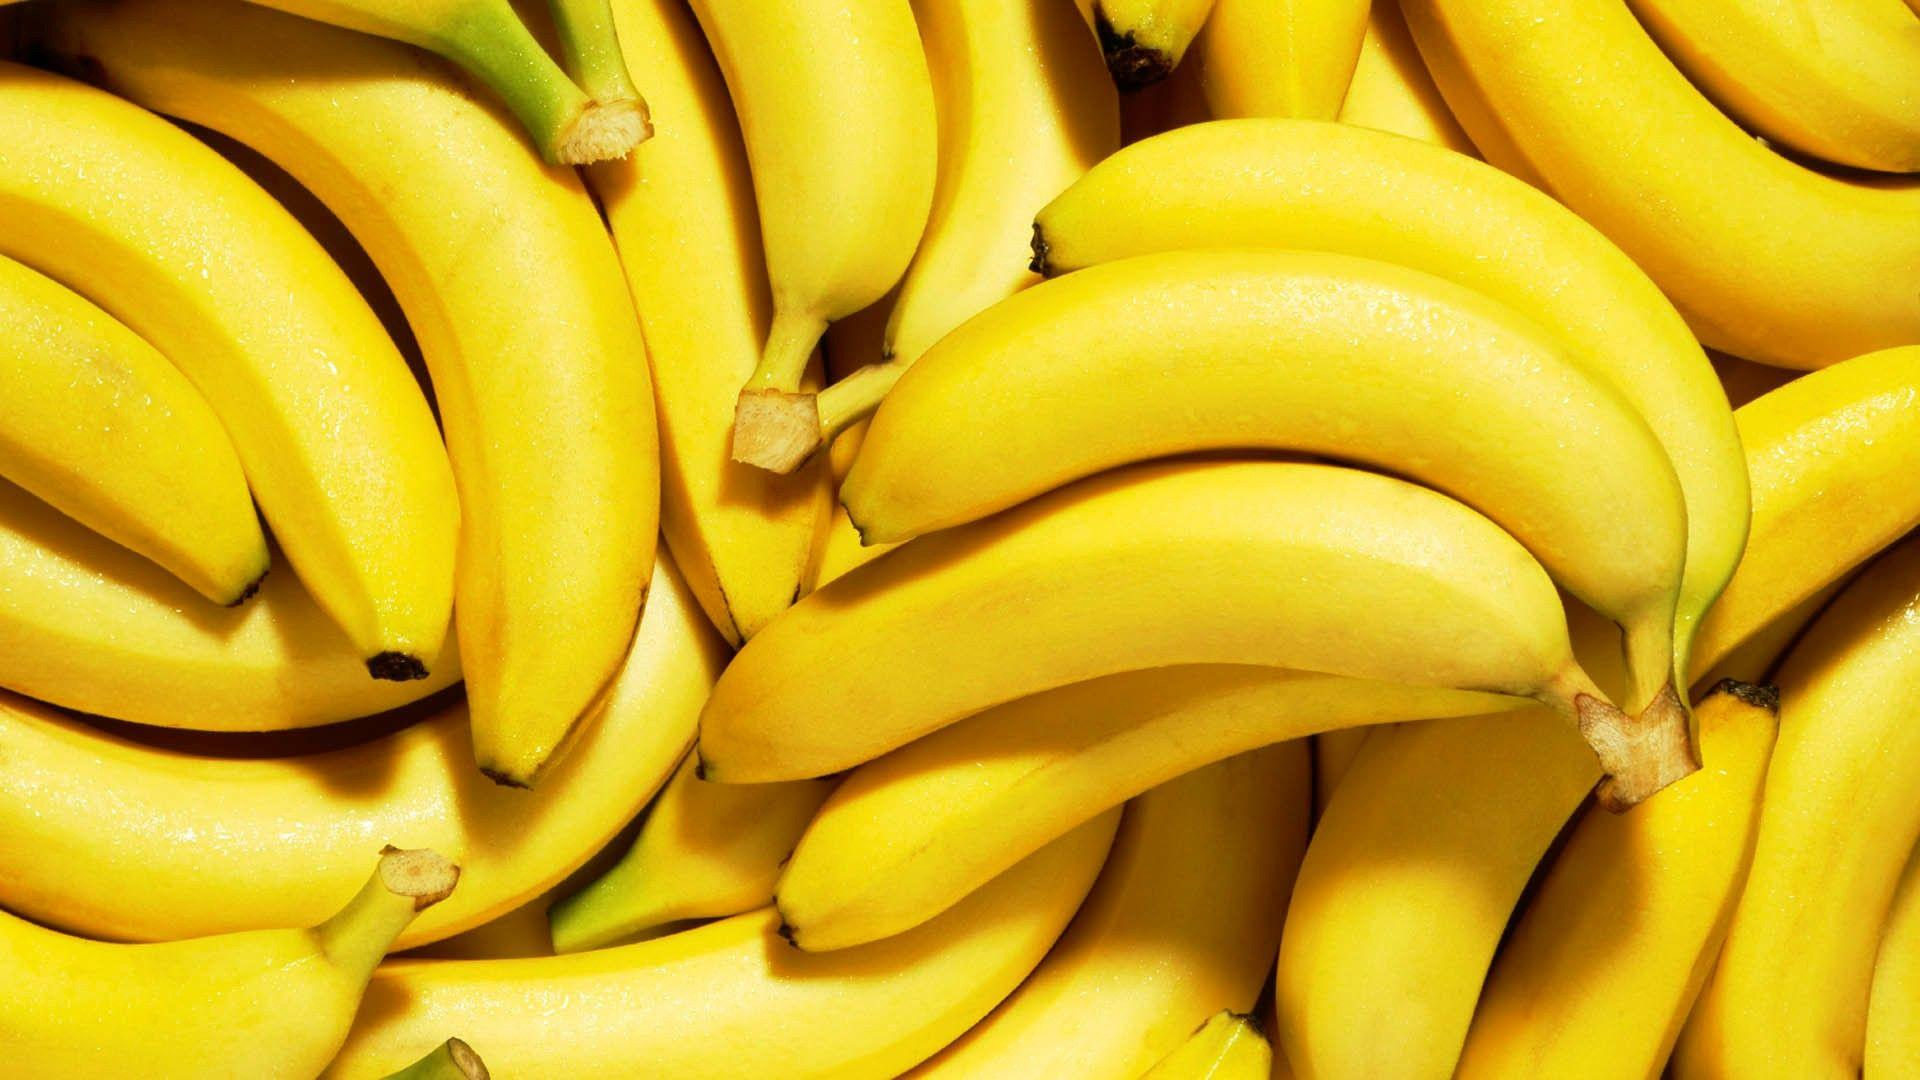 Banana background – The Best background for All Interior Decorations